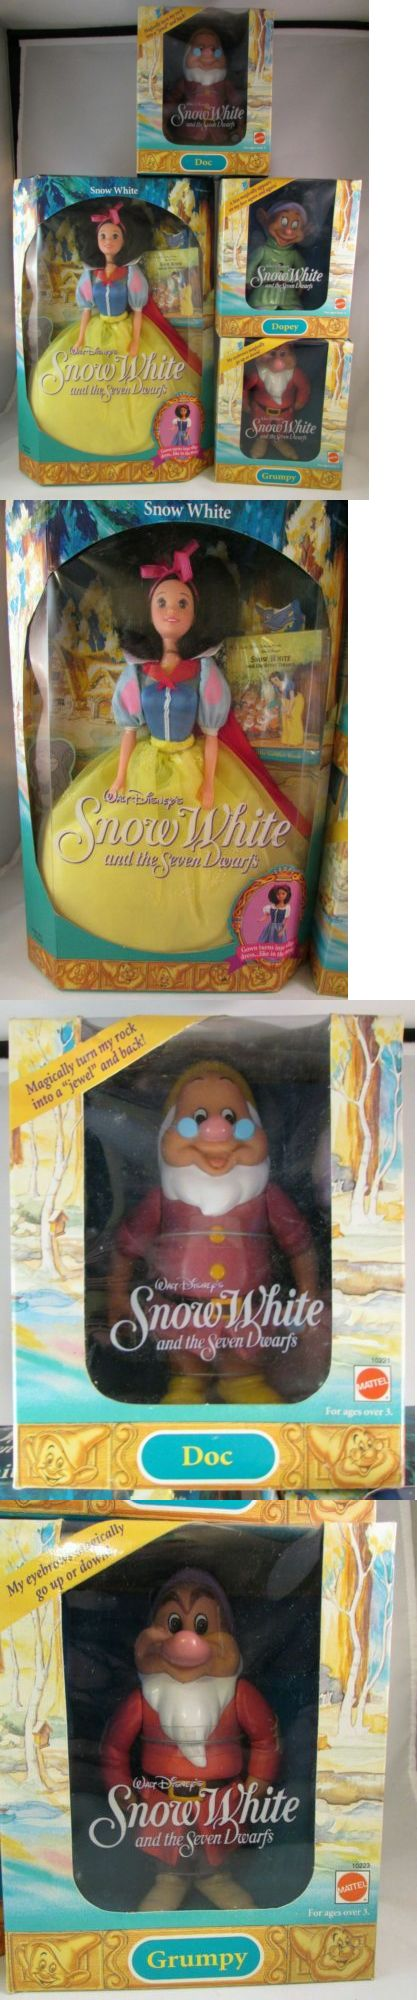 Snow White 19222: Disney Snow White Doll Lot With Doc Dopey Grumpy Mattel -> BUY IT NOW ONLY: $45 on eBay!